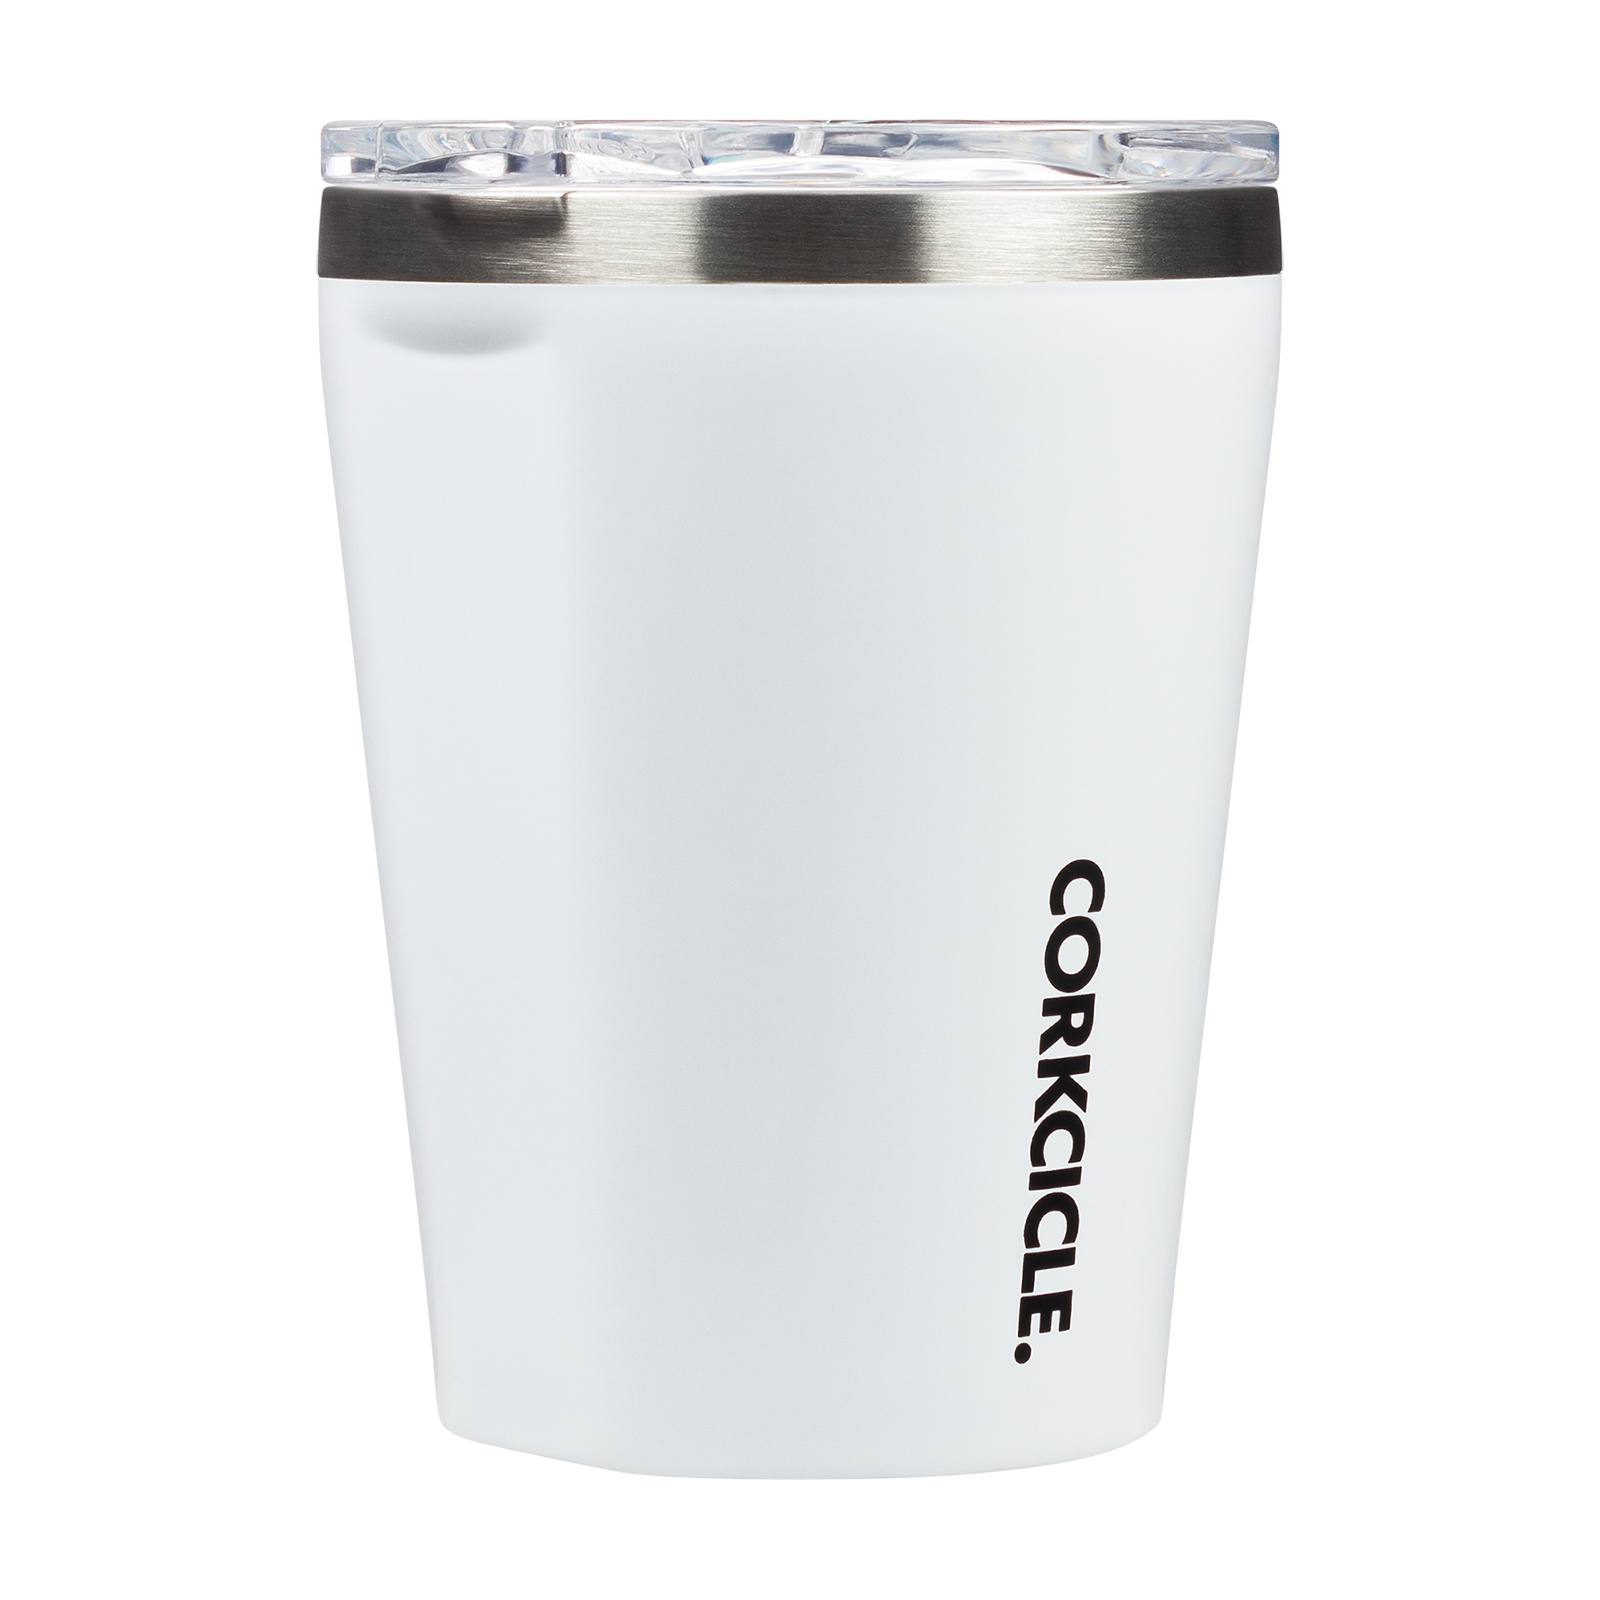 Tumbler product photography